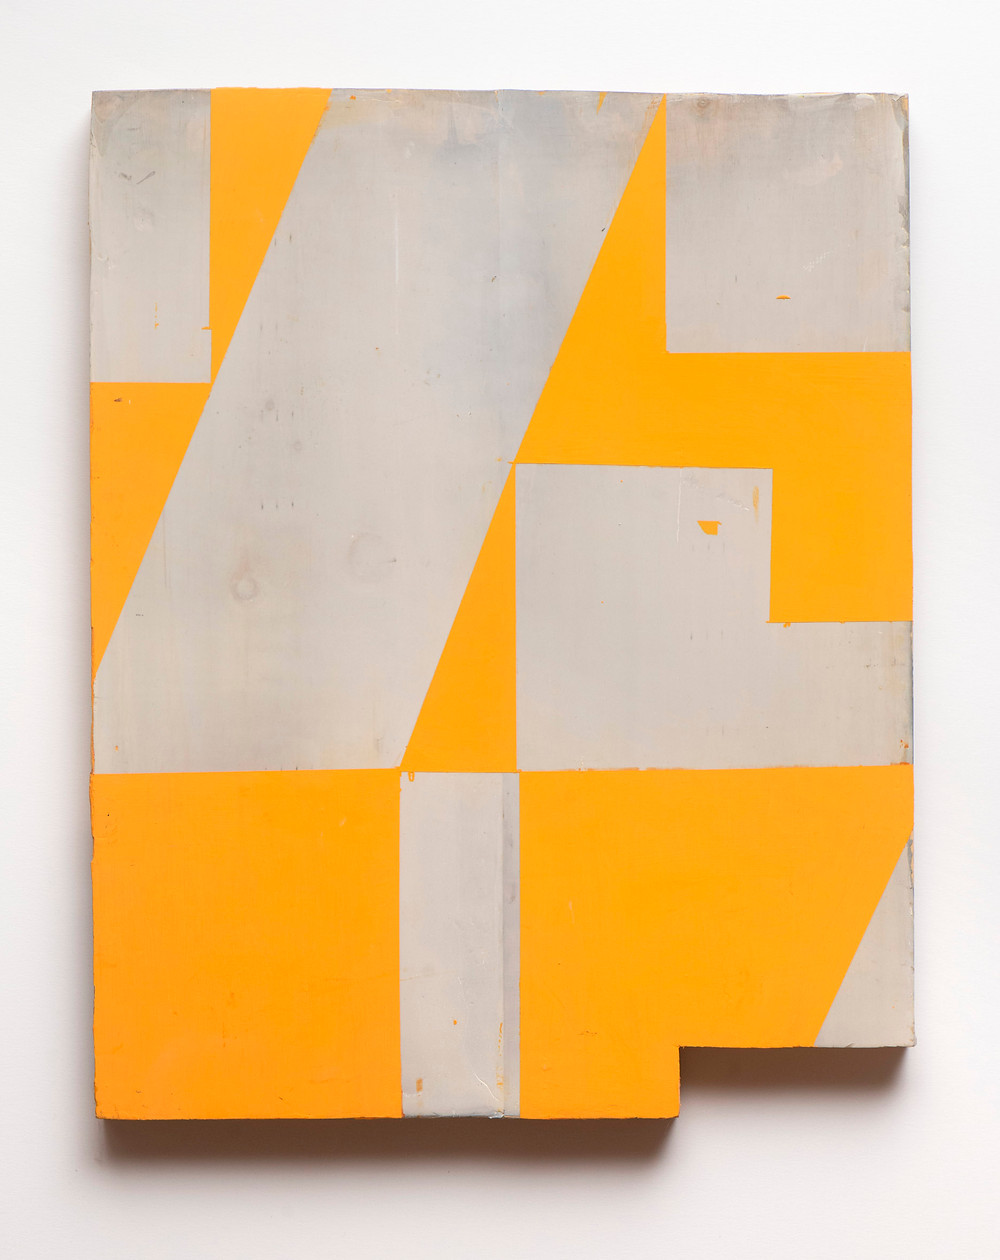 A geometric painting on wood with alternating angles of yellow-orange and white with a broken edged perimeter.